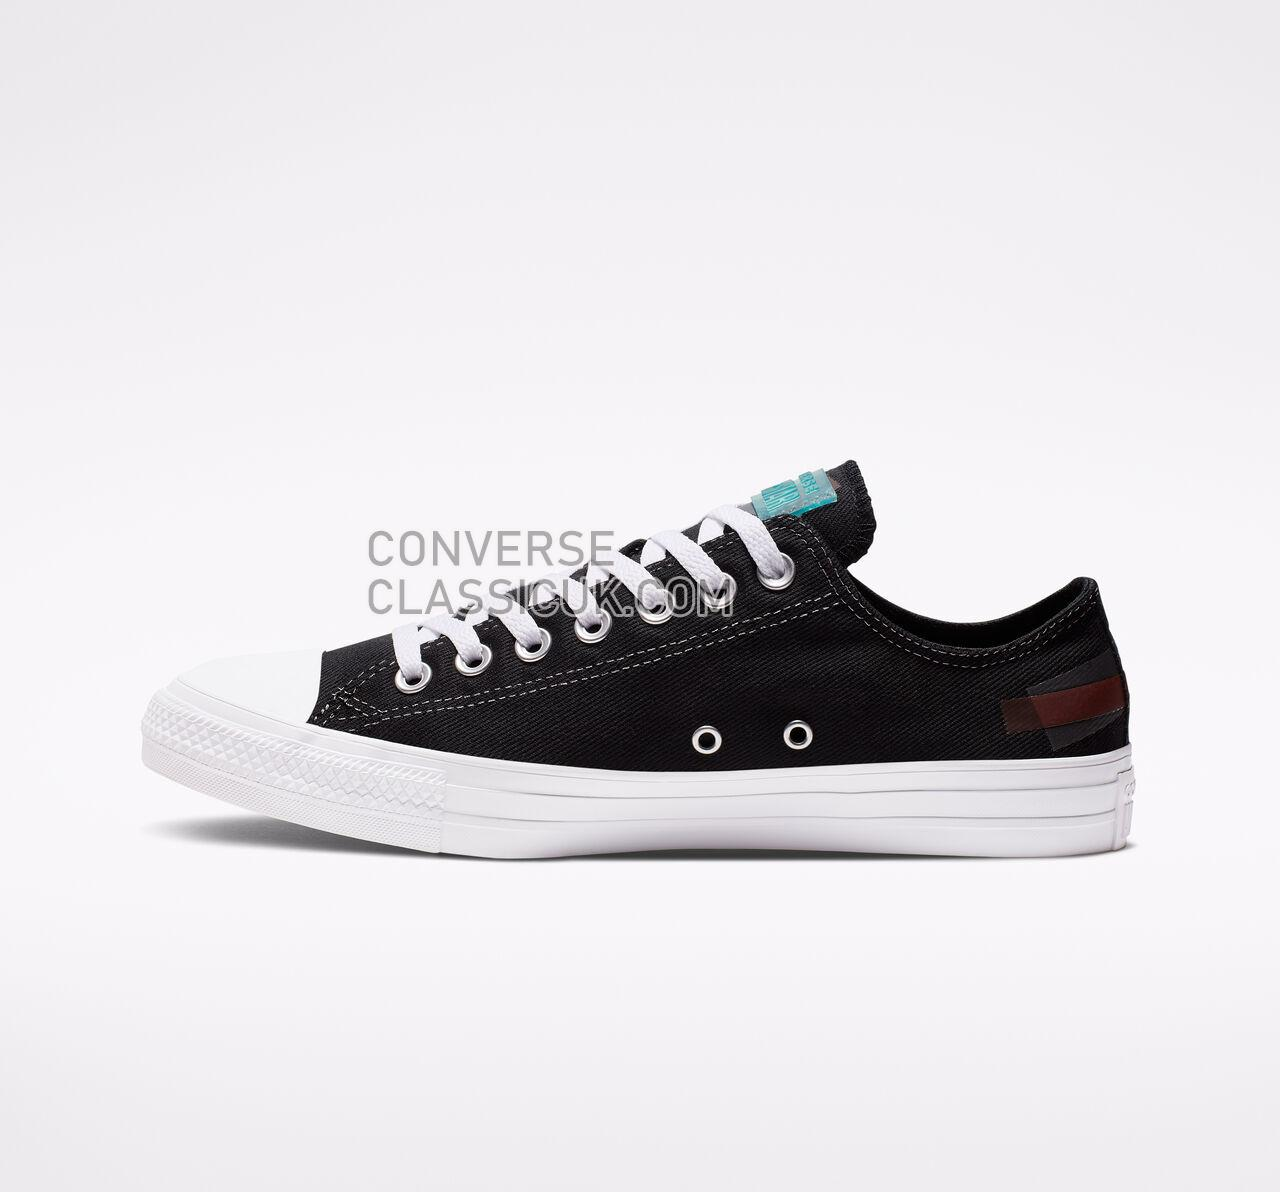 Converse Chuck Taylor All Star Space Racer Low Top Mens Womens Unisex 165331F Black/Enamel Red/White Shoes